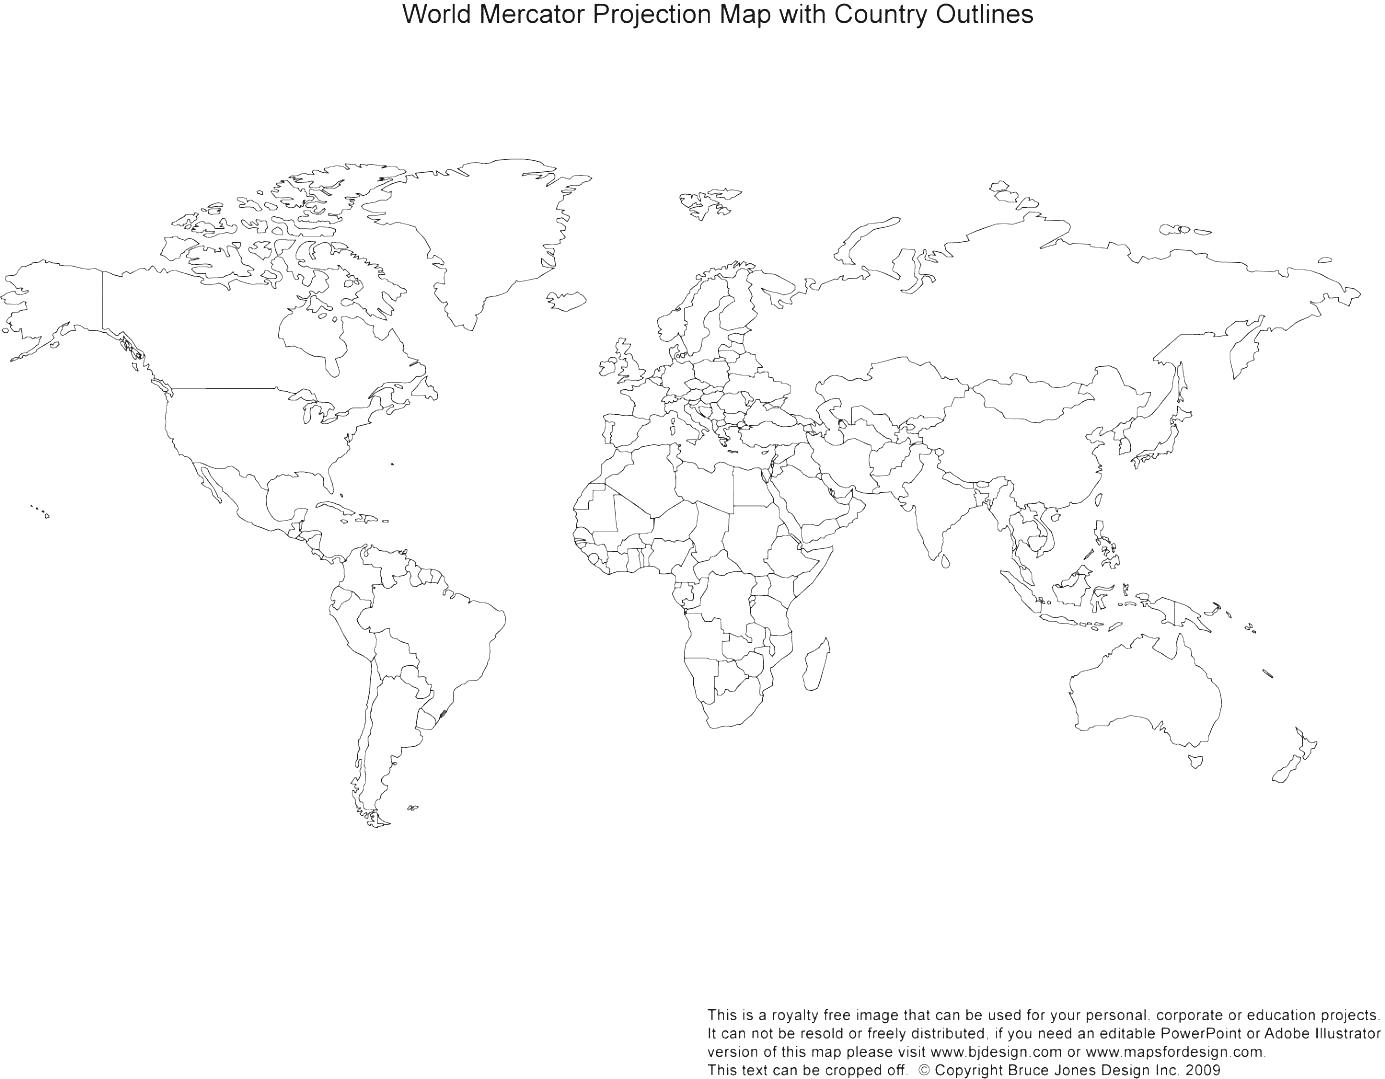 World map black and white with country names pdf 100 images world map black and white with country names pdf black and white world map with countries world map black and white with gumiabroncs Image collections